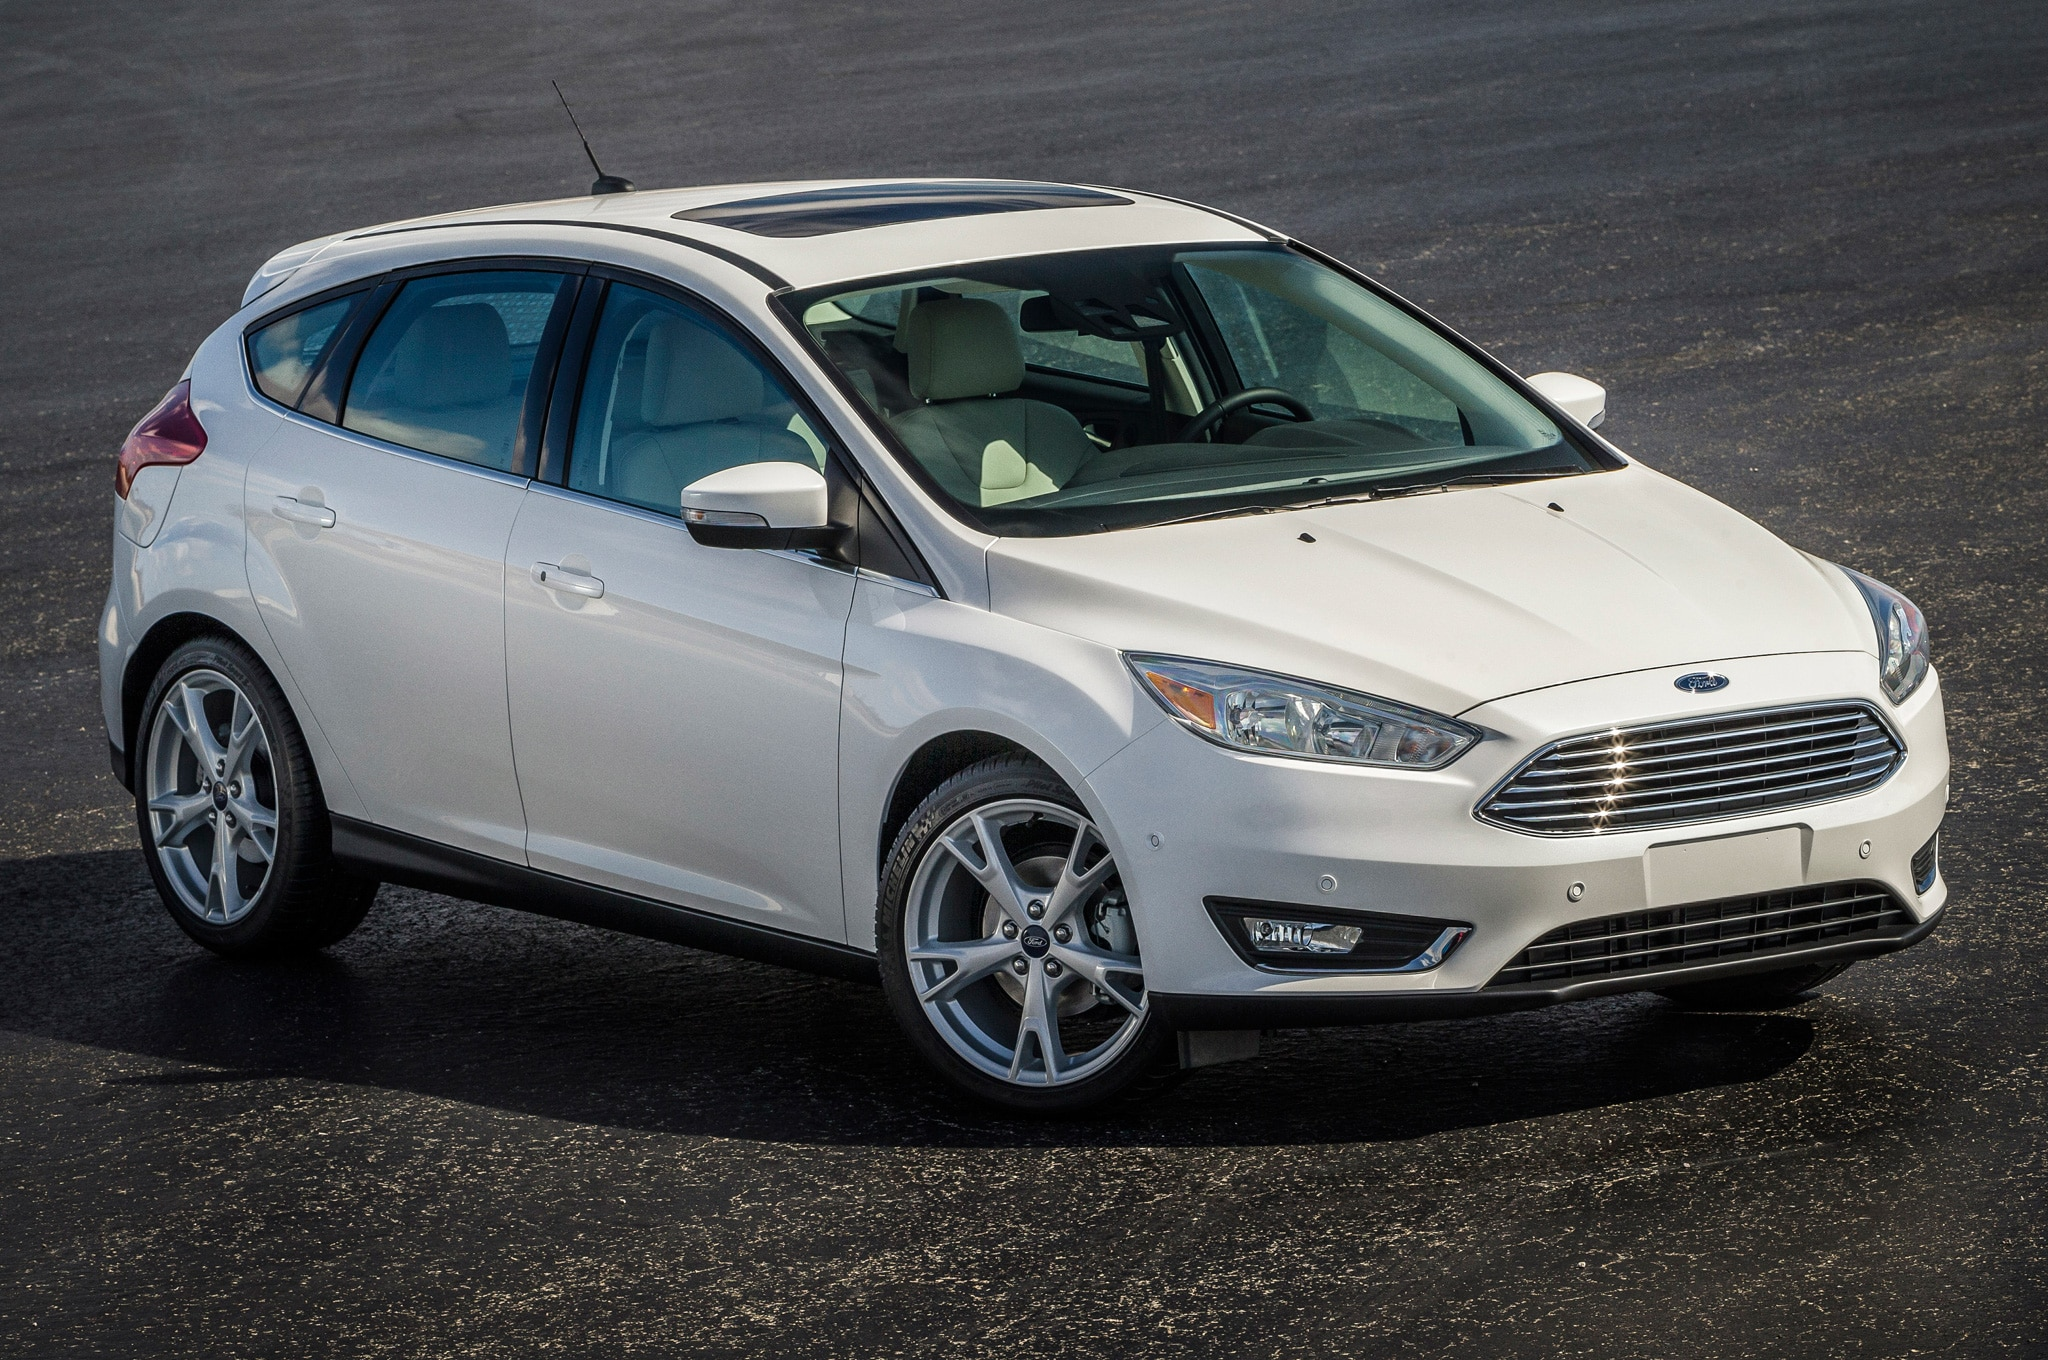 2015 ford focus hatchback front side view from above